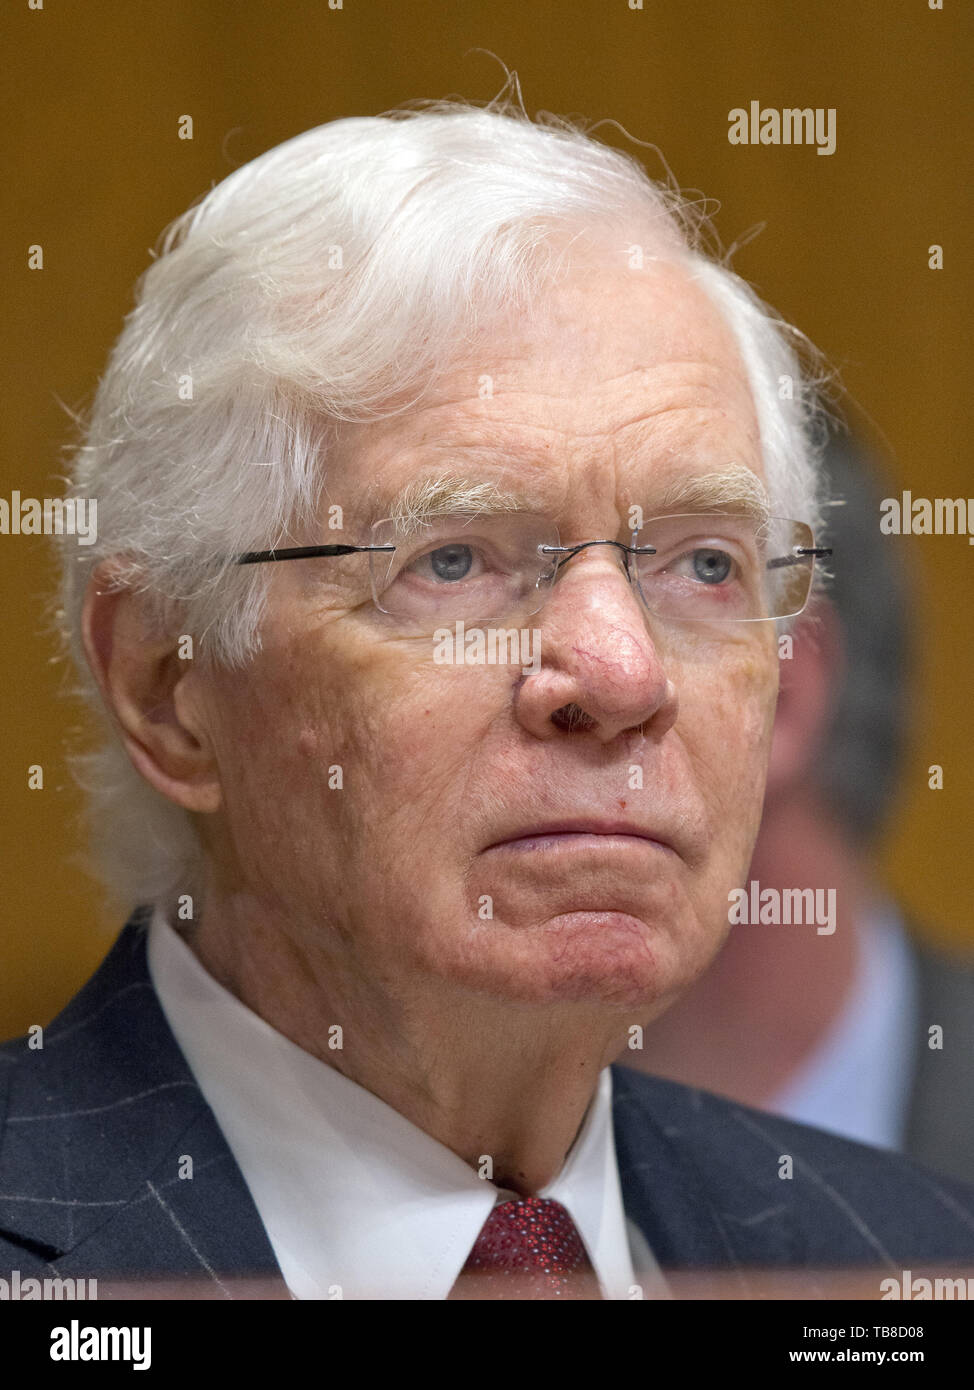 May 30, 2019: THAD COCHRAN, former Senate Appropriations chairman, has died at age 81. William Thad Cochran was an American attorney and politician who served as a United States Senator from Mississippi from 1978 to 2018, as a member of the Republican Party, and previously served as a member of the U.S. House of Representatives from 1973 to 1978. Pictured: March 22, 2017, Washington, DC, U.S.: Senator Thad Cochran (Rep. of MS) listens as US Secretary of Defense Mattis and the Chairman of the Joint Chiefs of Staff, US Marine Corps General Dunford, Jr. testify during a US Senate Committee on App - Stock Image